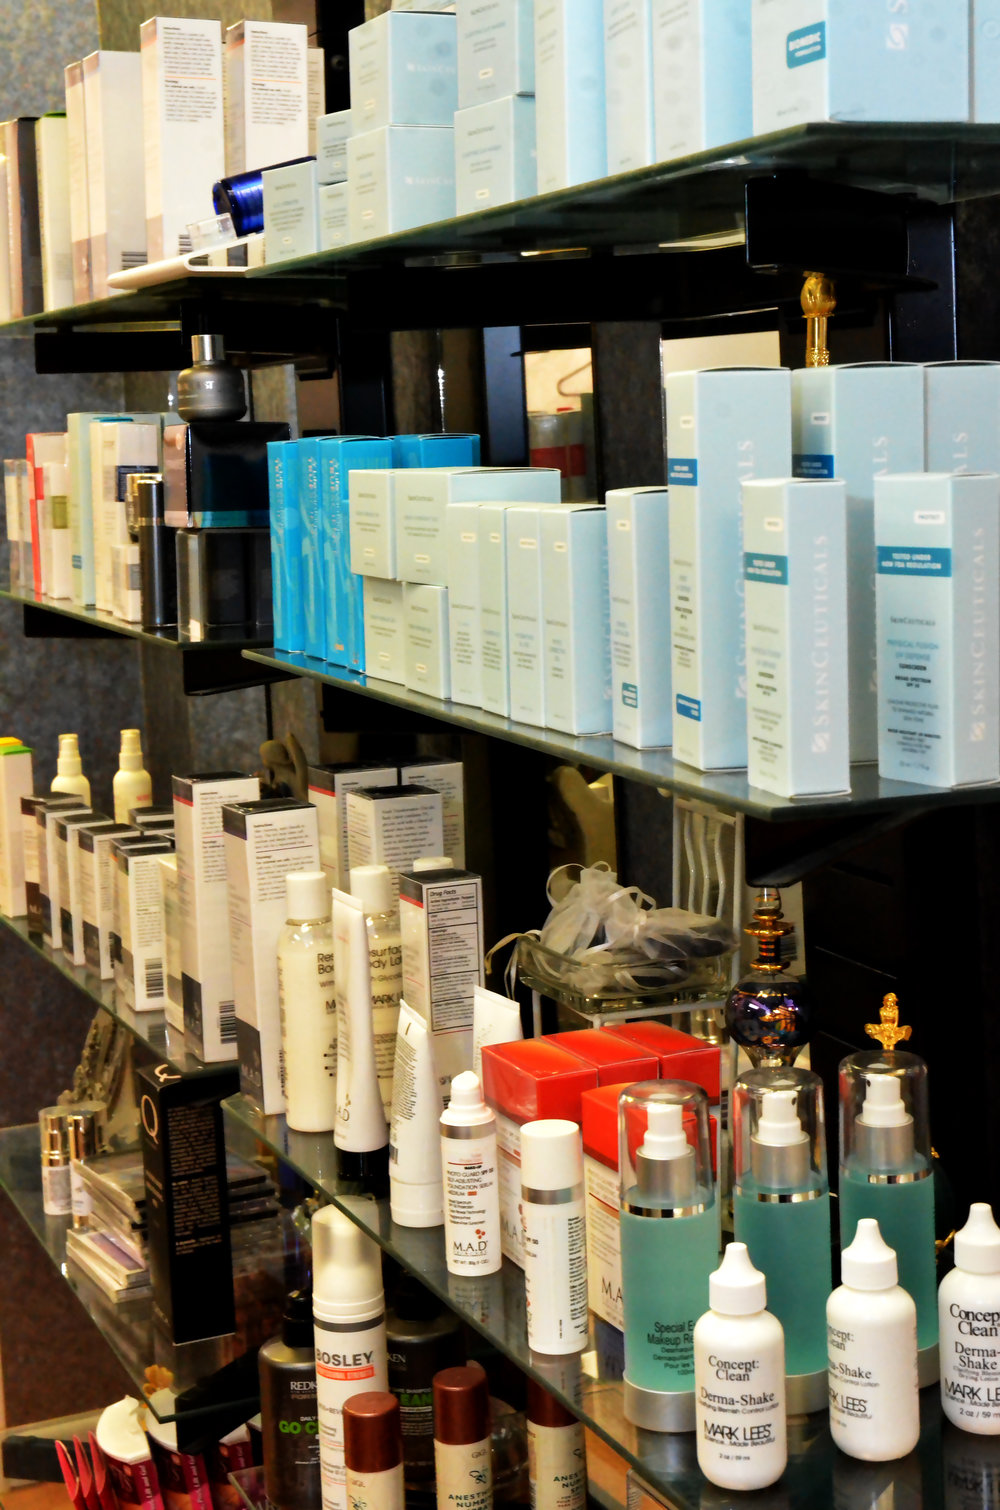 A mix of products from SkinCeuticals, Dermaquest, MarkLees, and M.A.D.